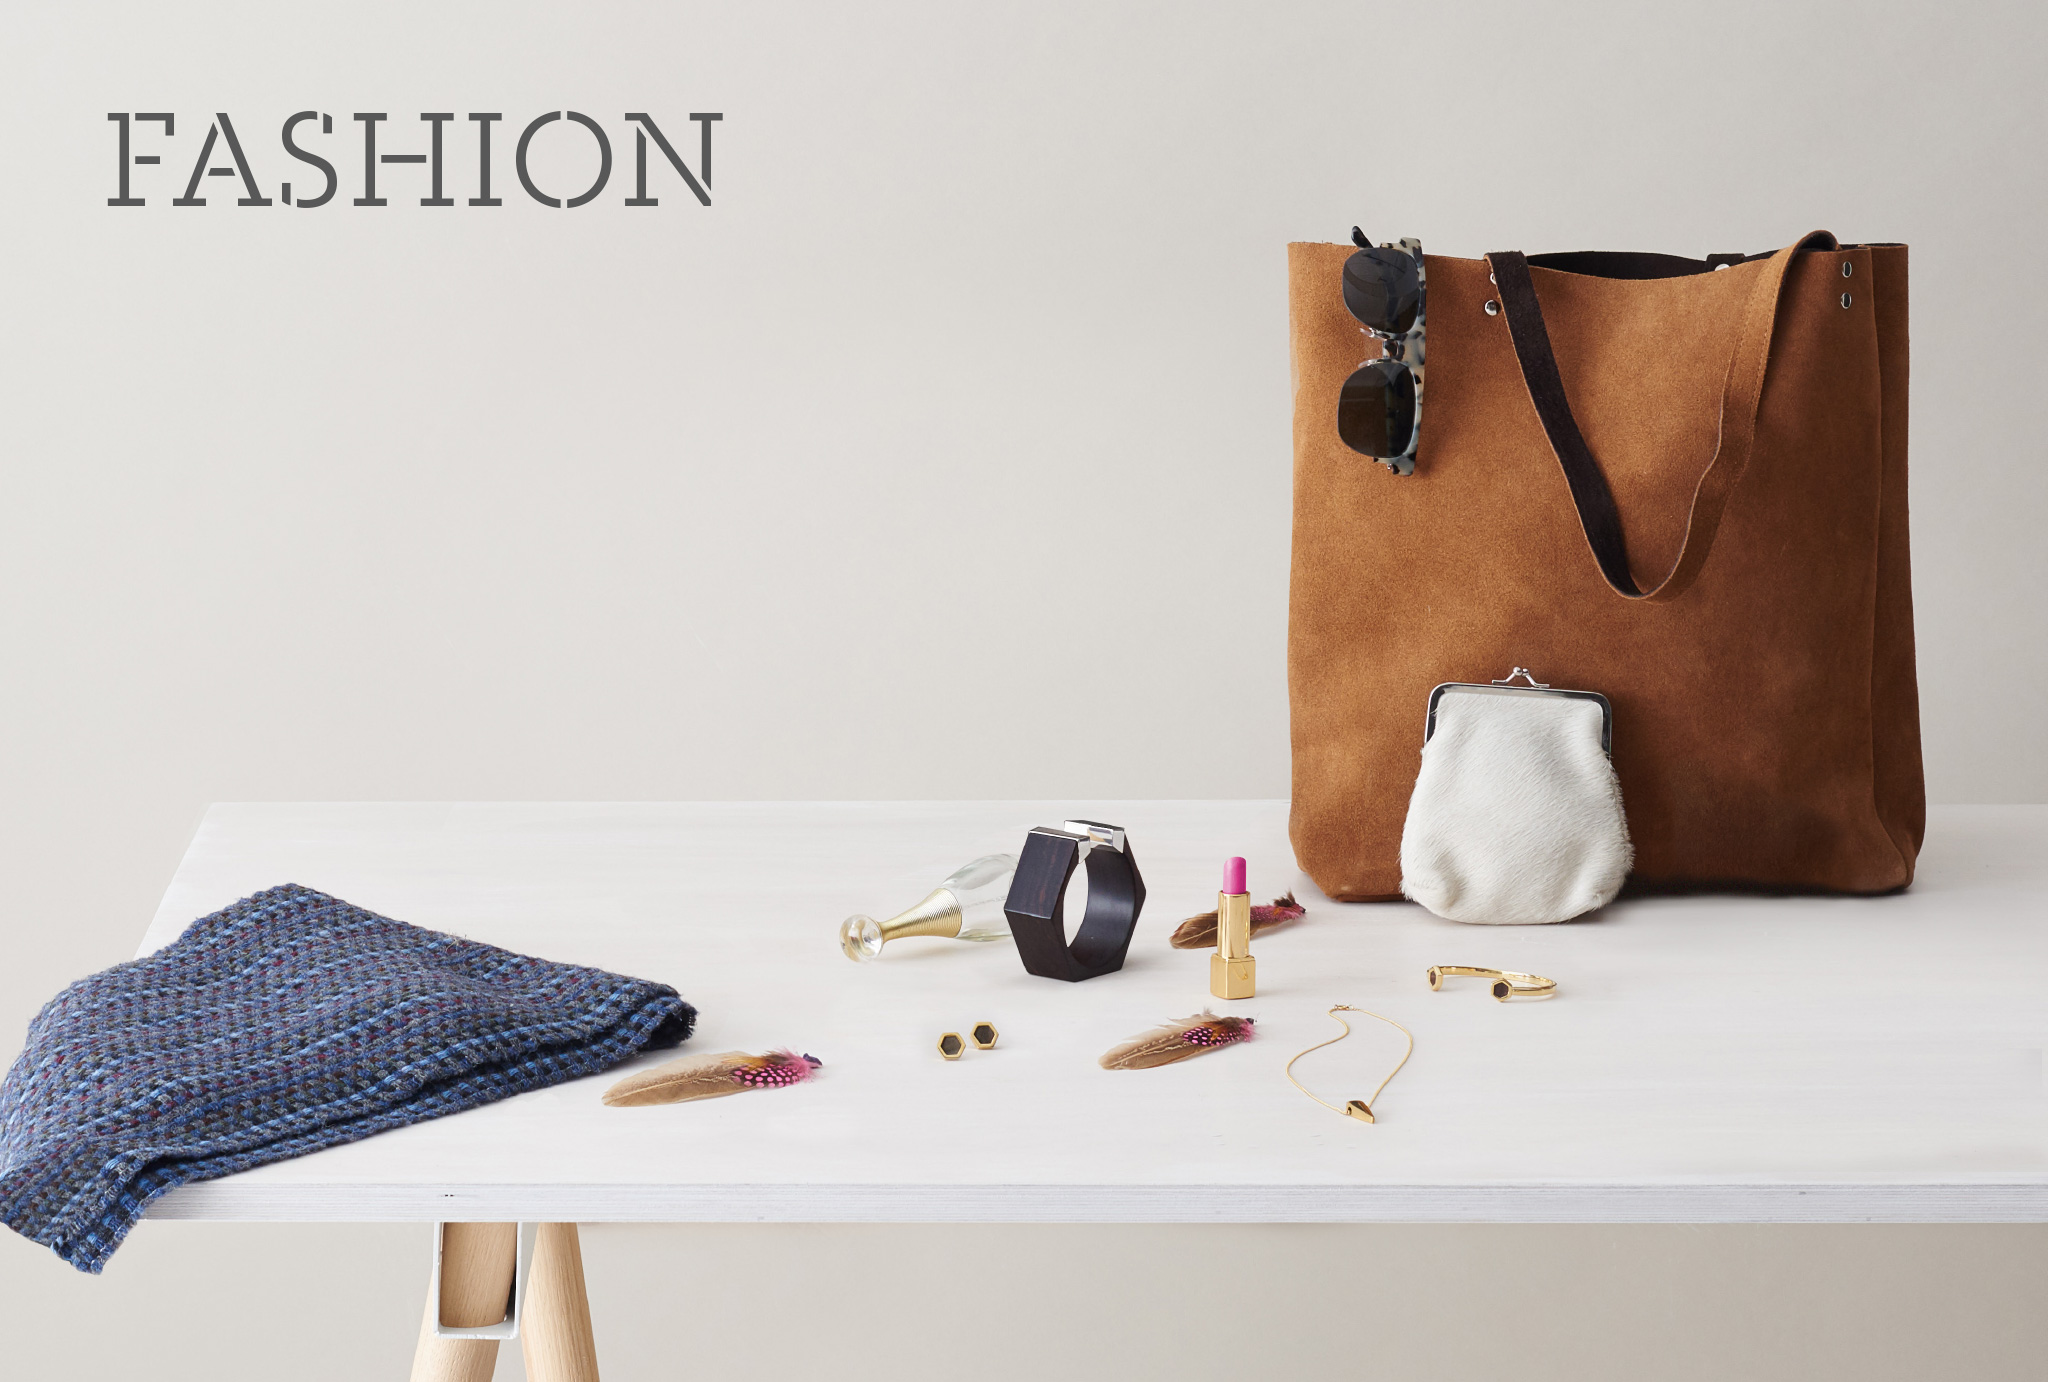 art direction photography for the fashion sector